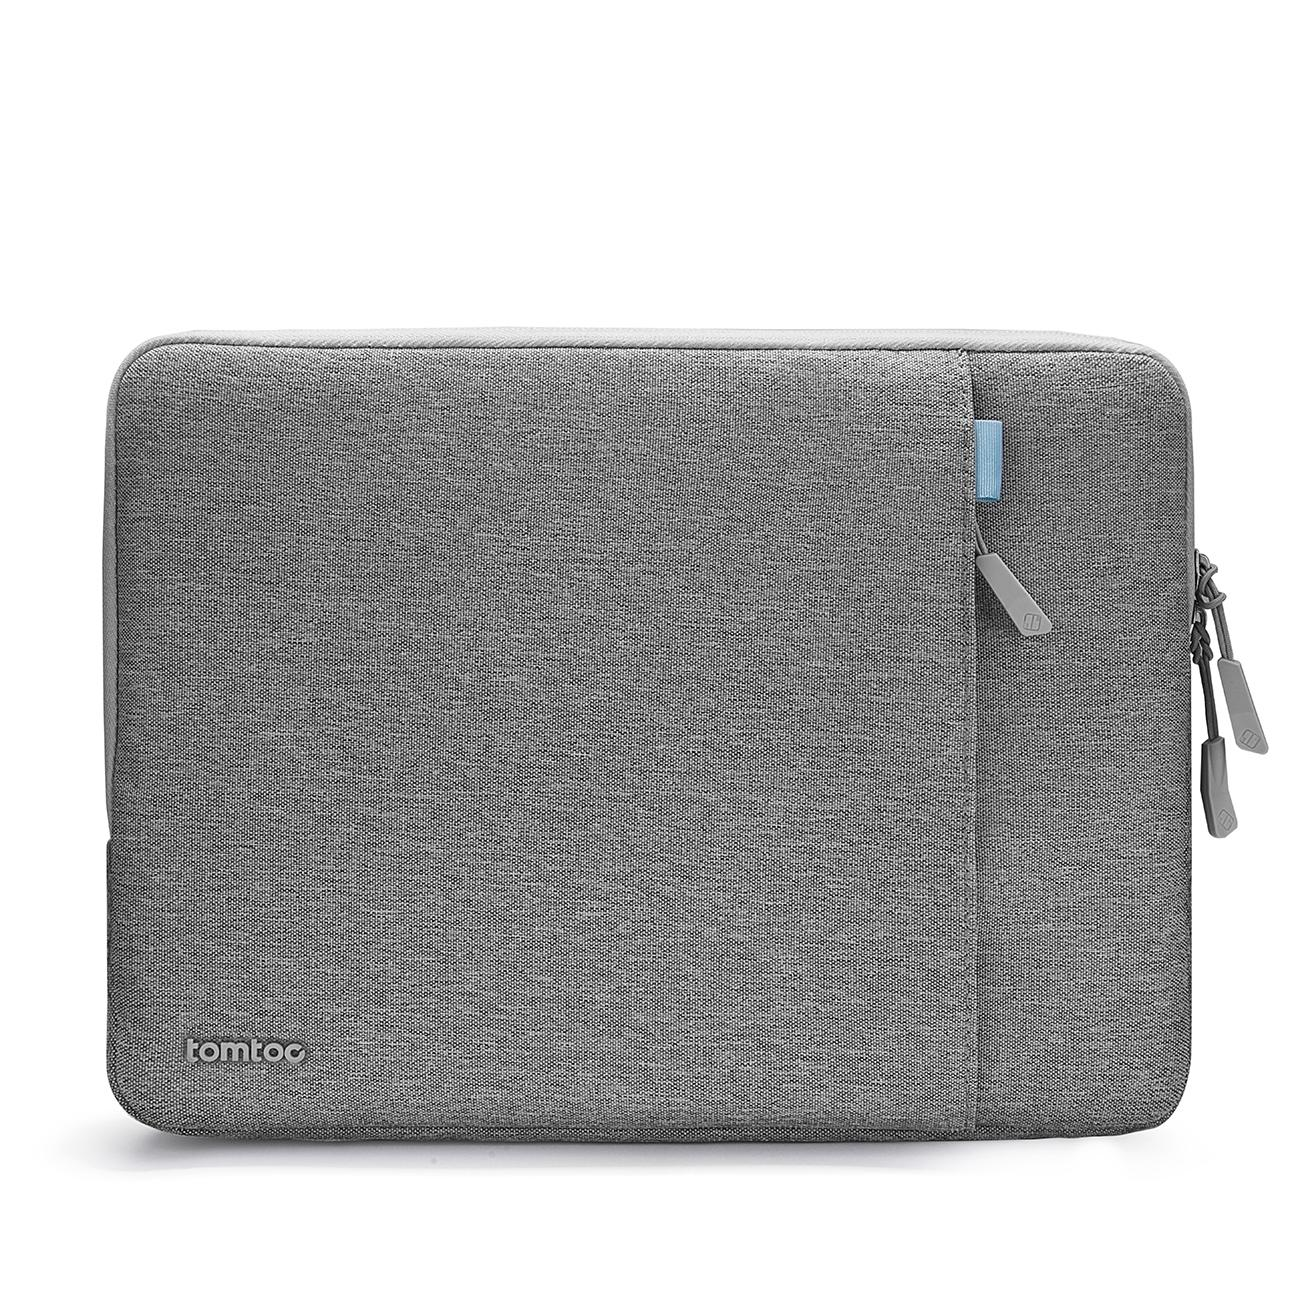 tomtoc 360° Protective 13-13.5 inch Laptop Sleeve ,Spill-Resistant Laptop Case with CornerArmor Patent & Accessory Pocket